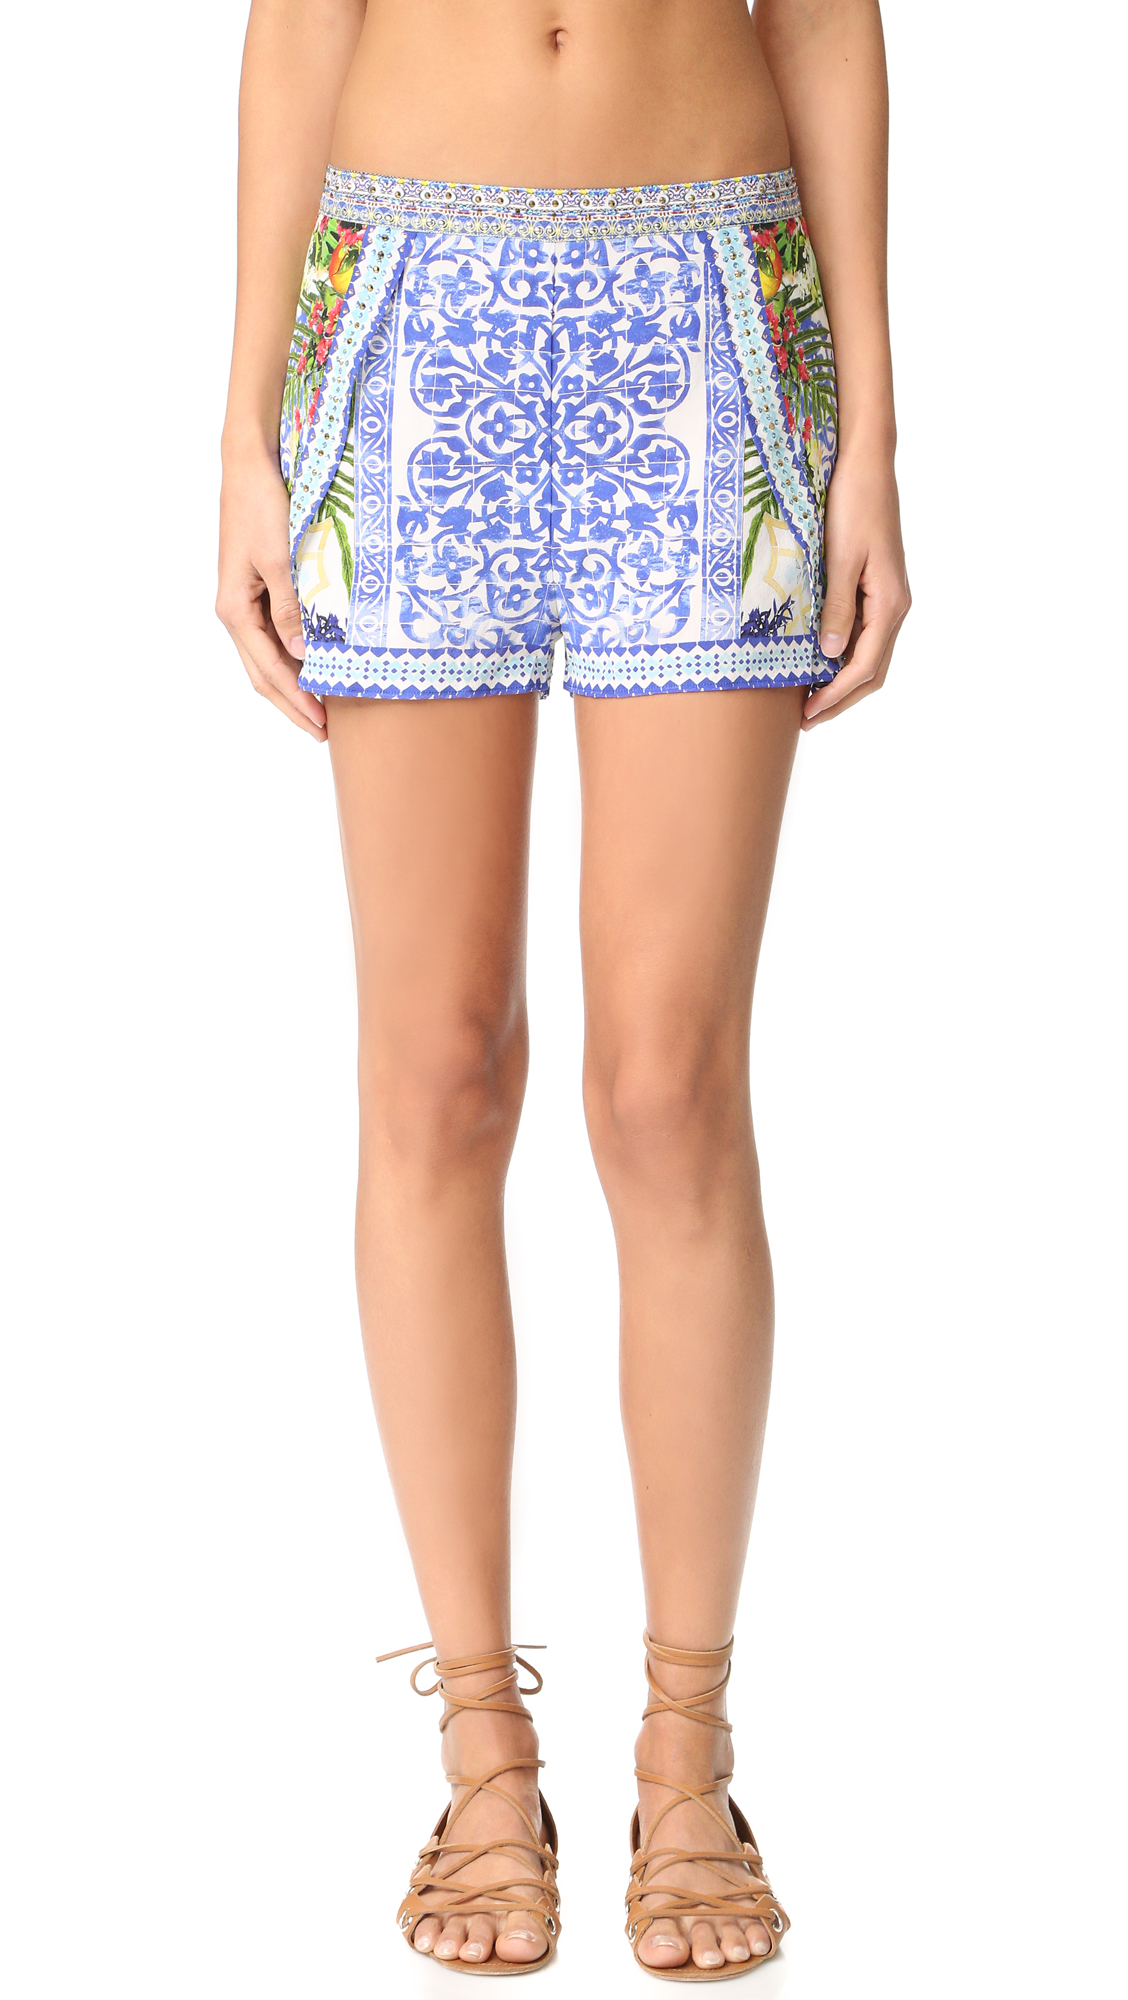 camilla female camilla waisted shorts with side overlay my majorelle